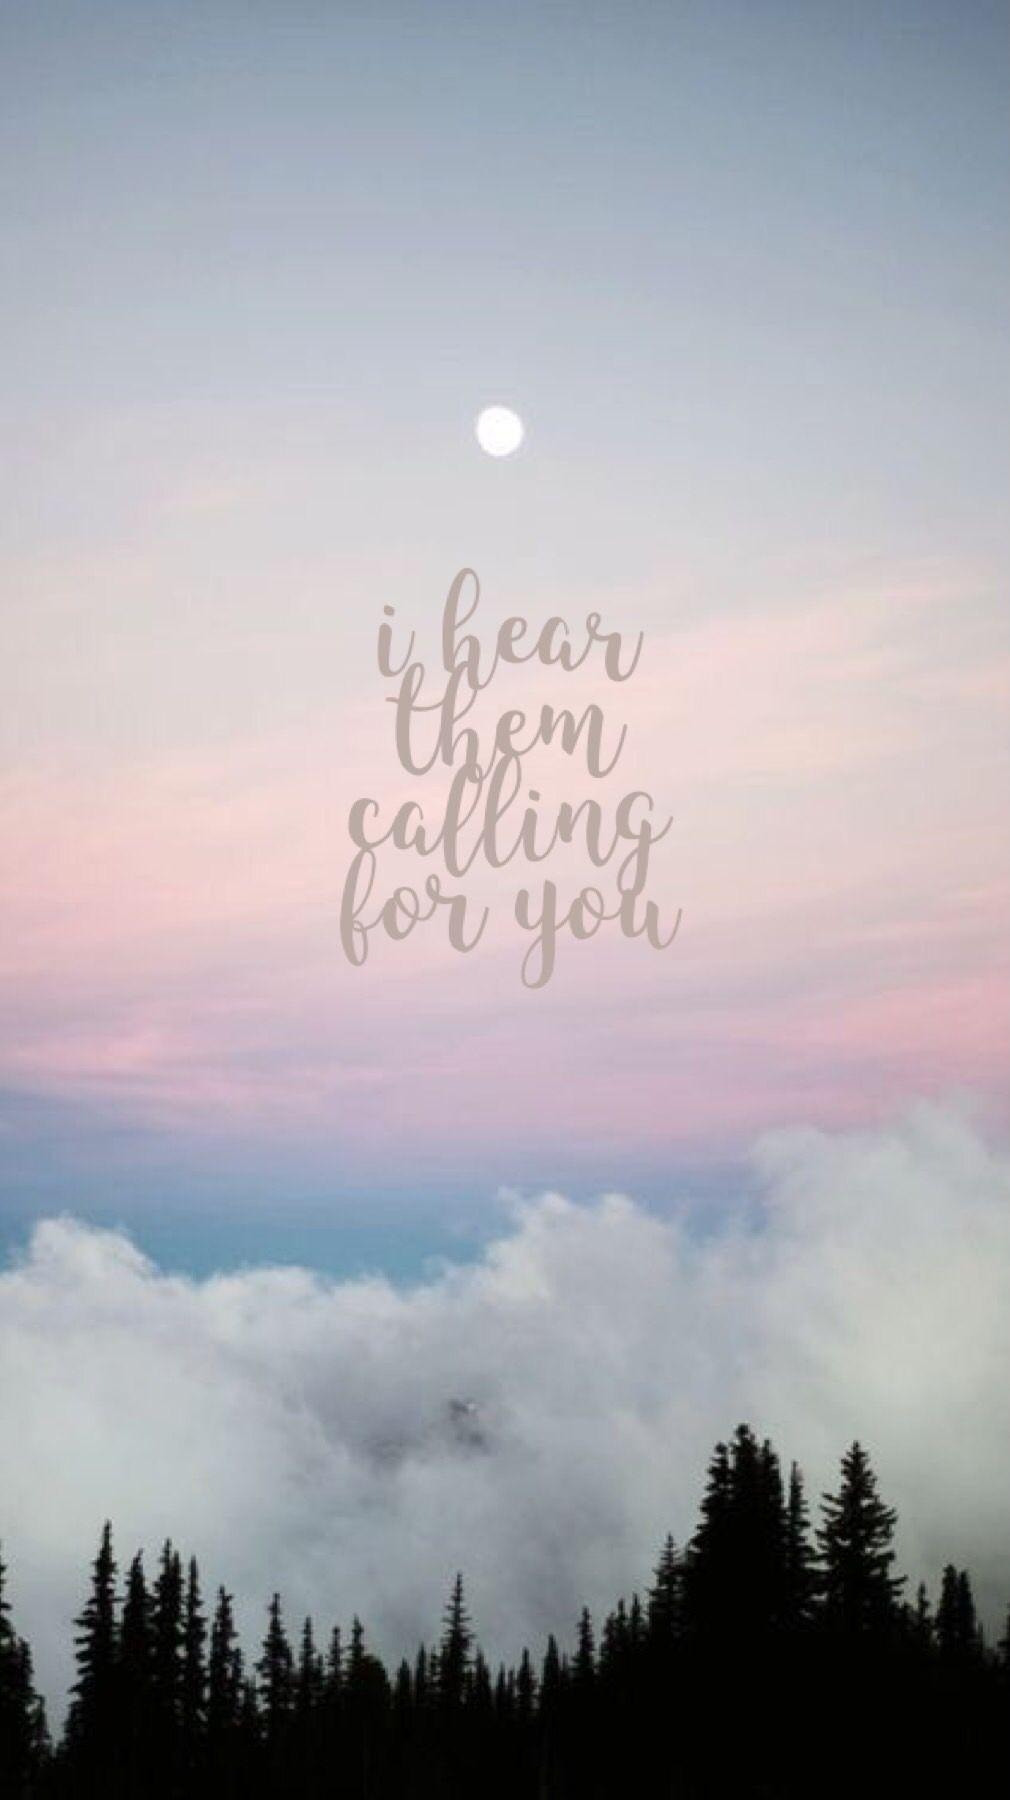 One Direction Lyrics Wallpapers Top Free One Direction Lyrics Backgrounds Wallpaperaccess